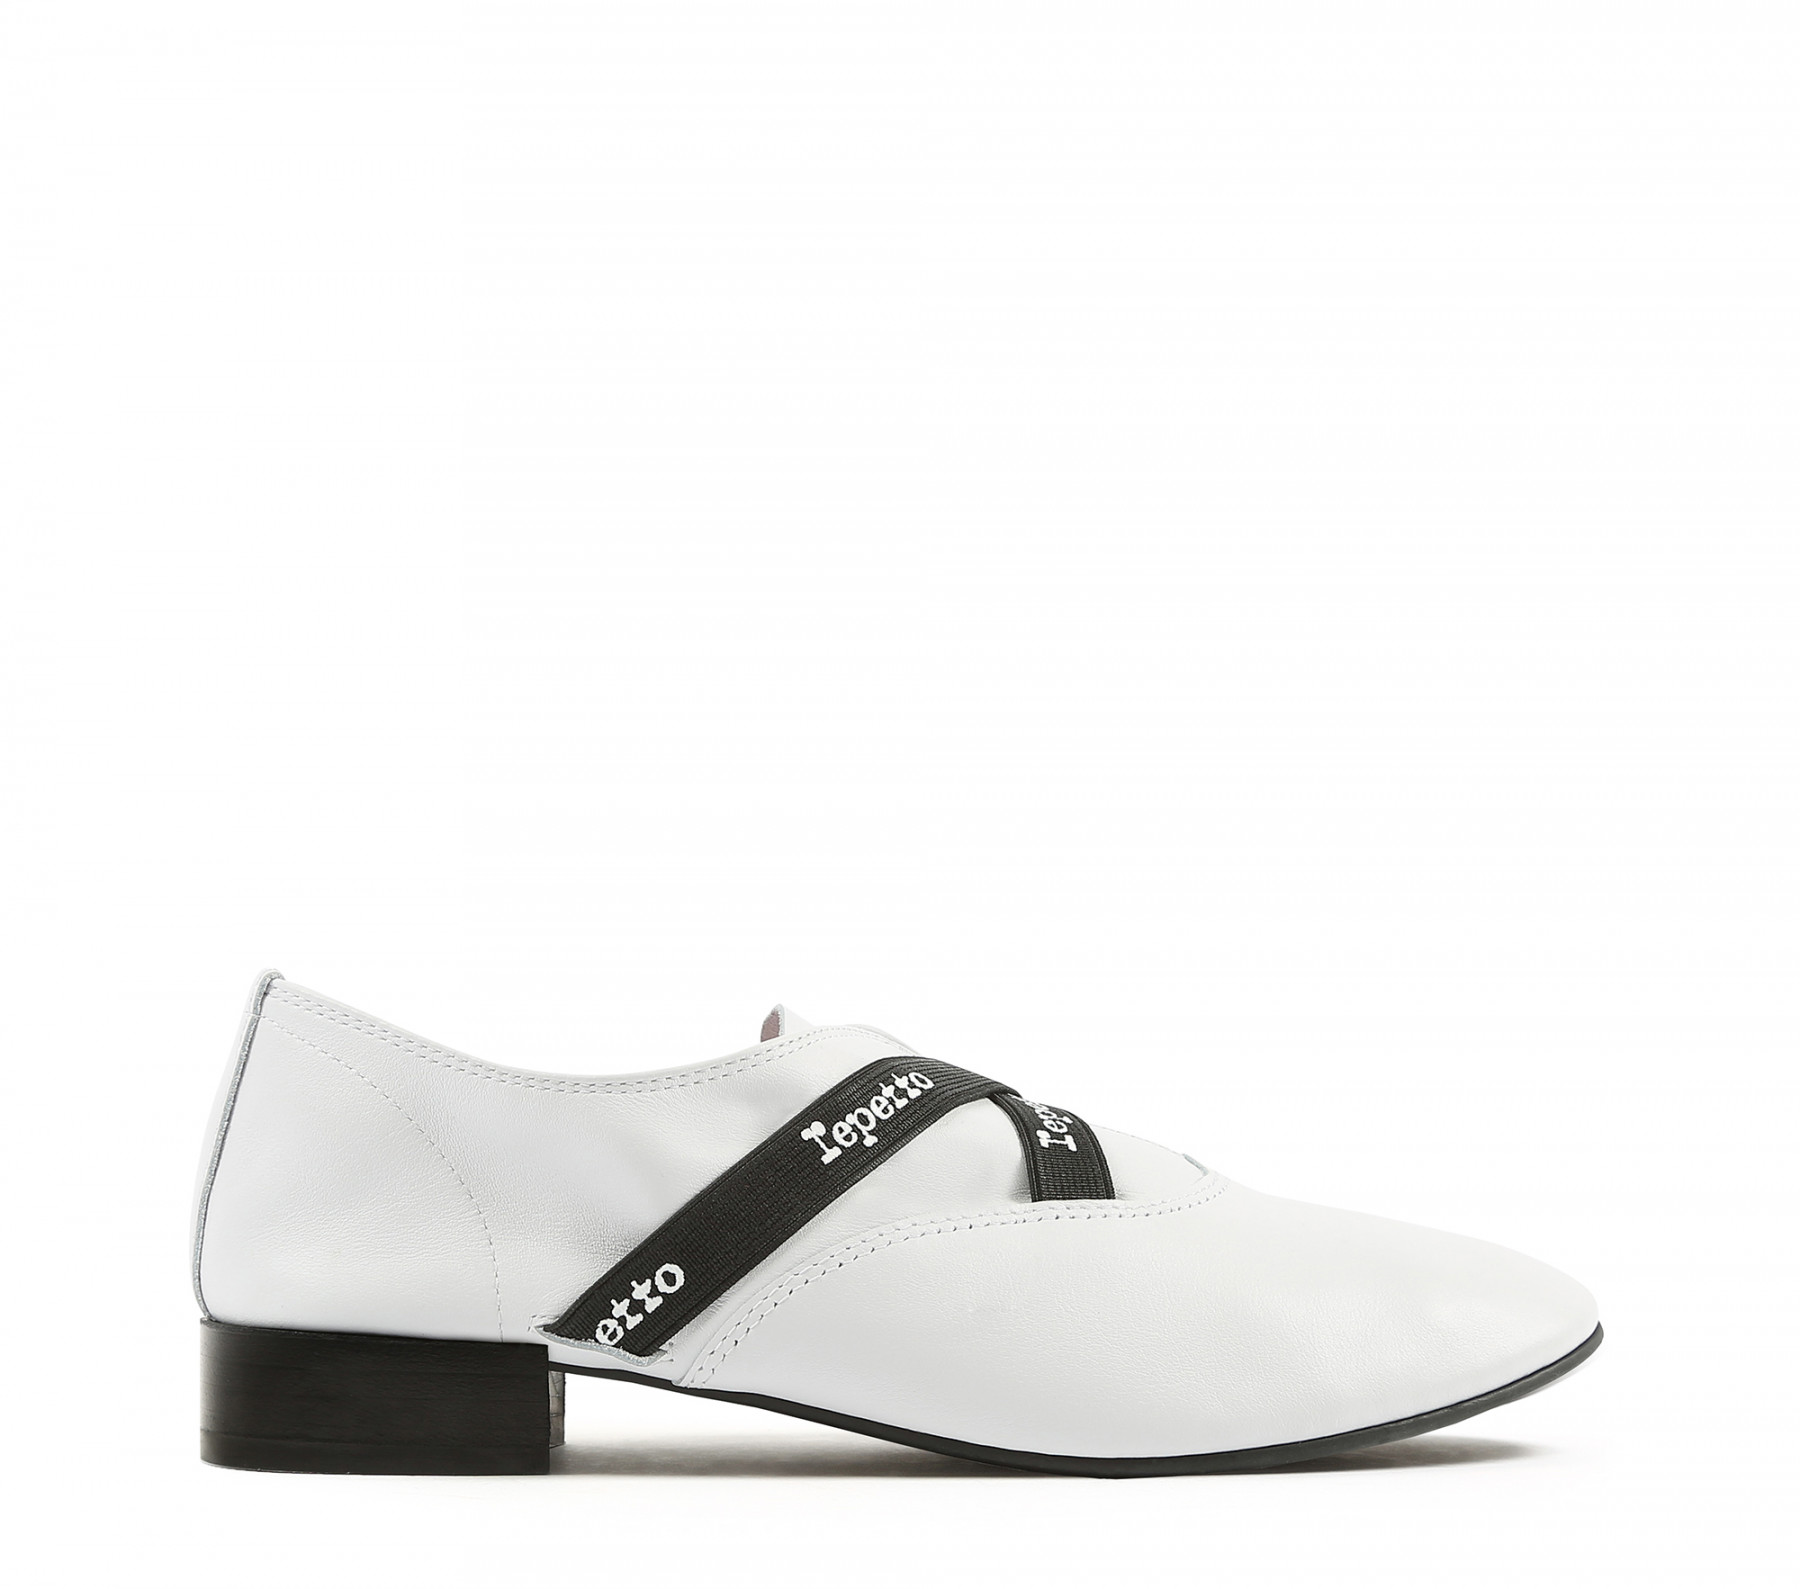 Joao oxford shoes